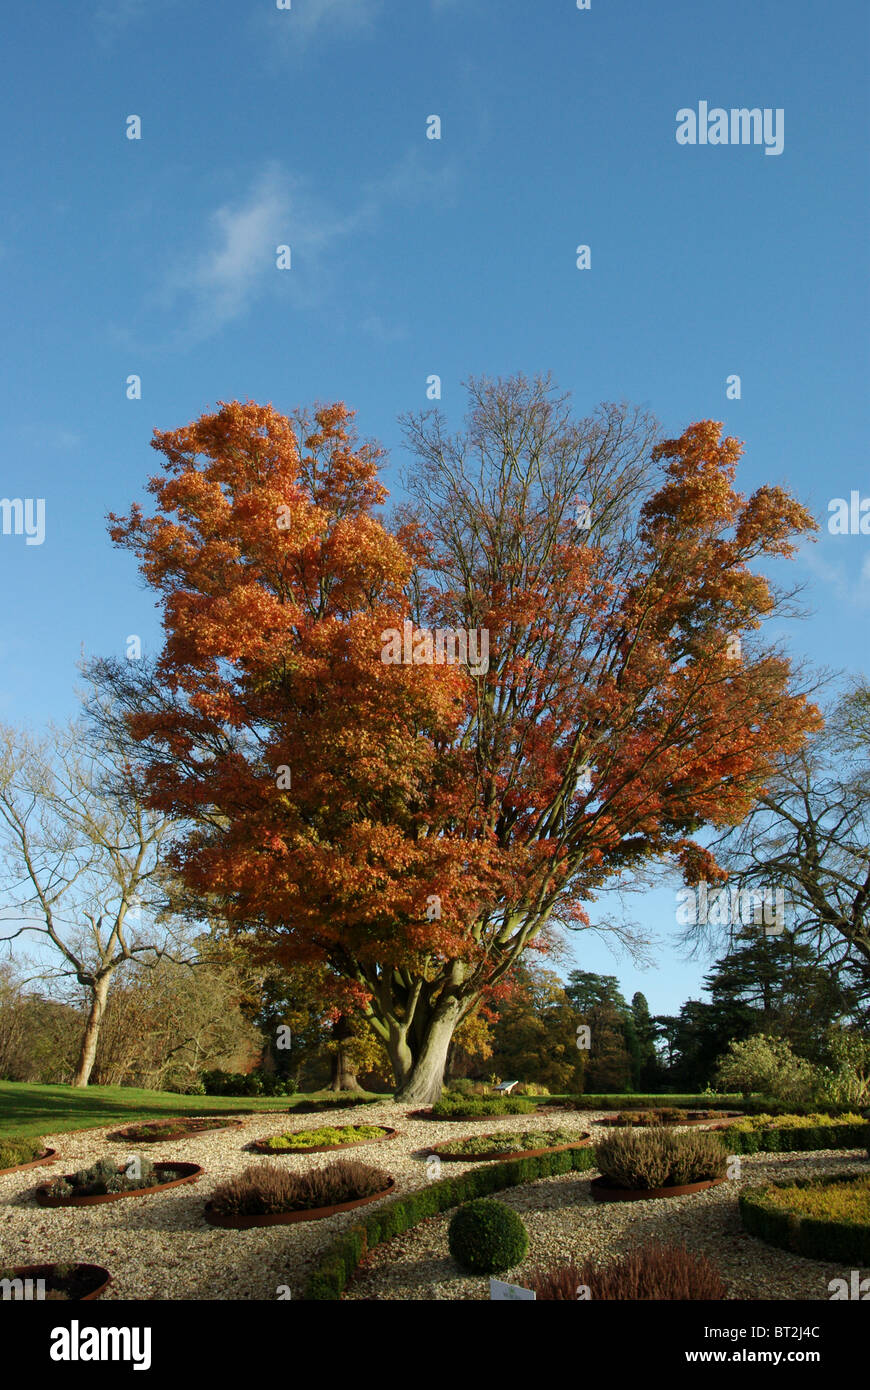 An Acer tree with its Autumn foliage in Woburn Abbey Gardens. - Stock Image